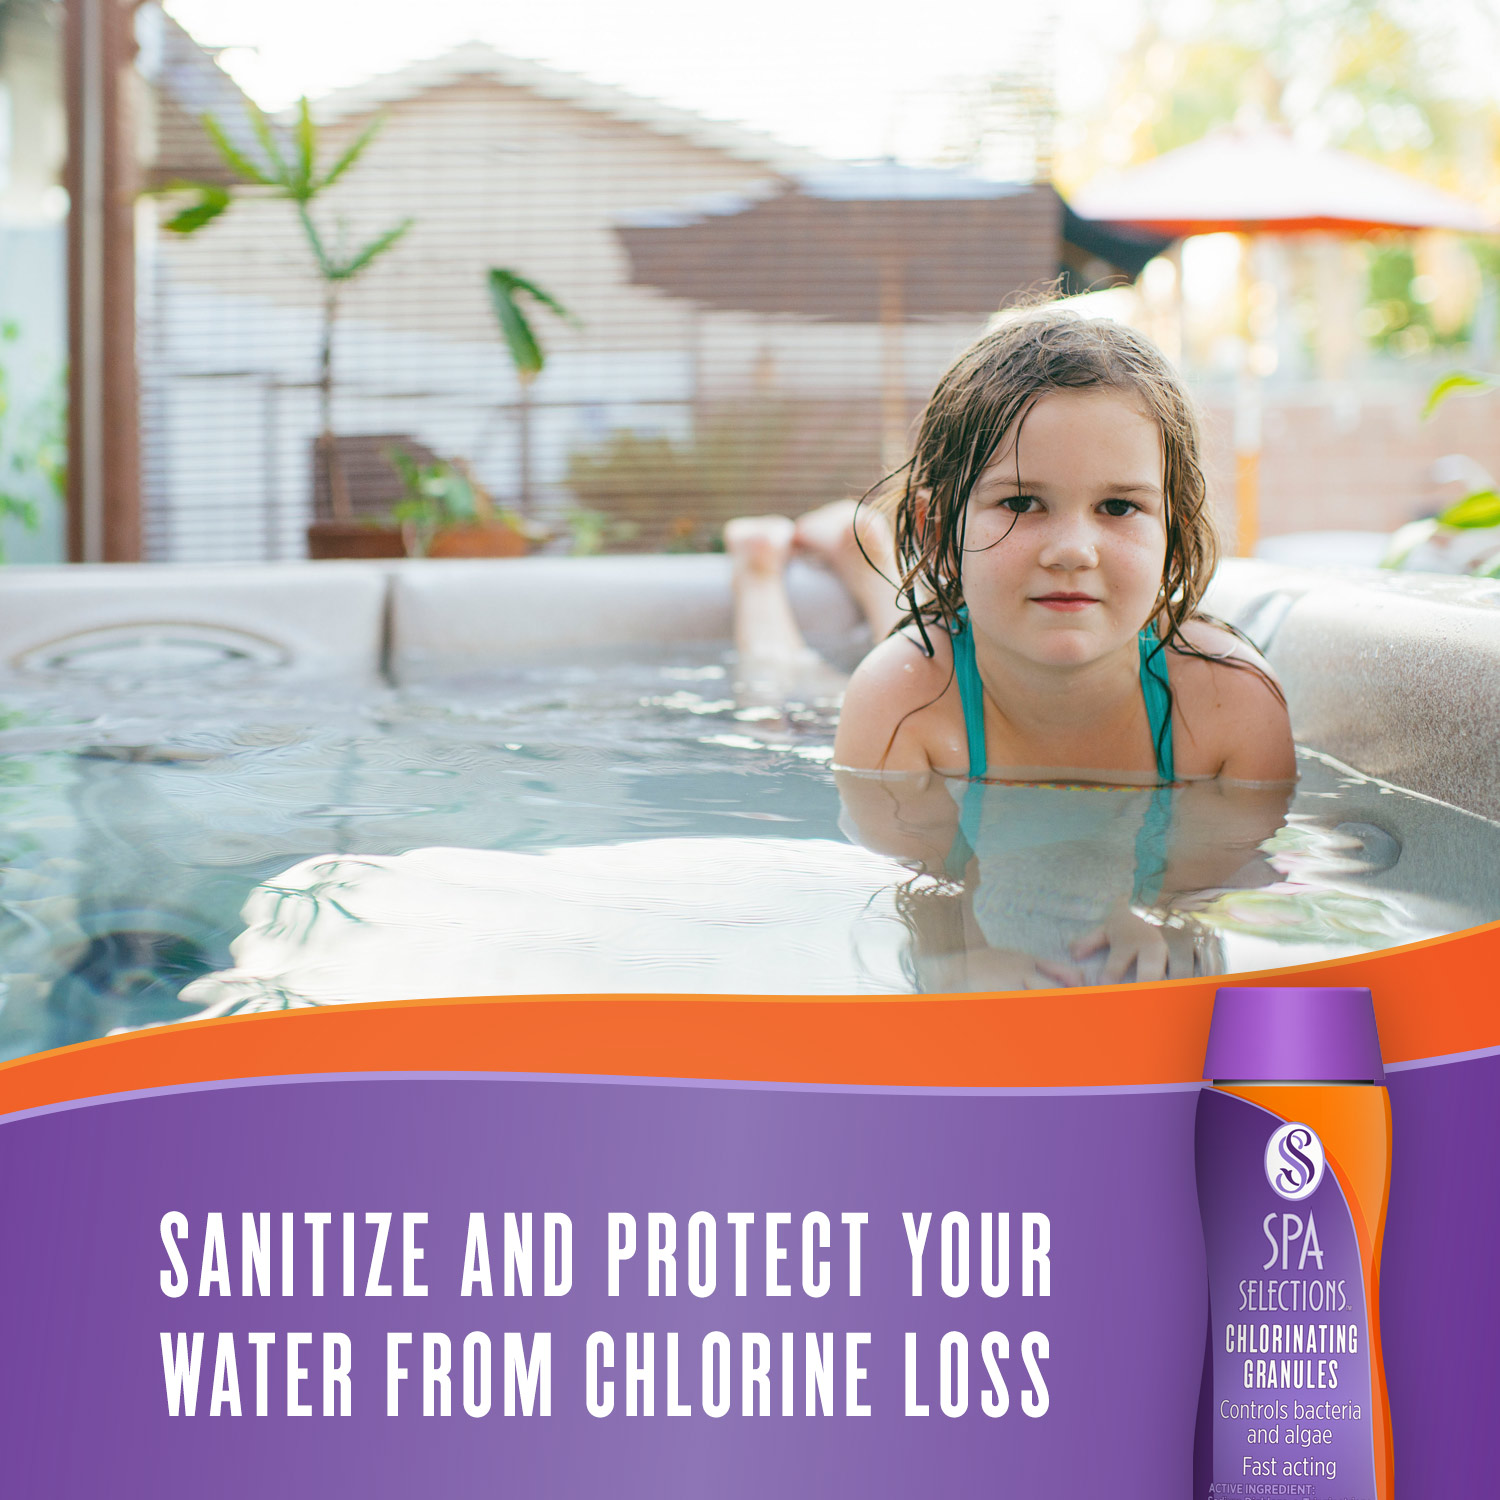 Little girl swimming in outdoor hot tub. Sanitize and protect your water from chlorine loss with Spa Selections chlorinating granules.